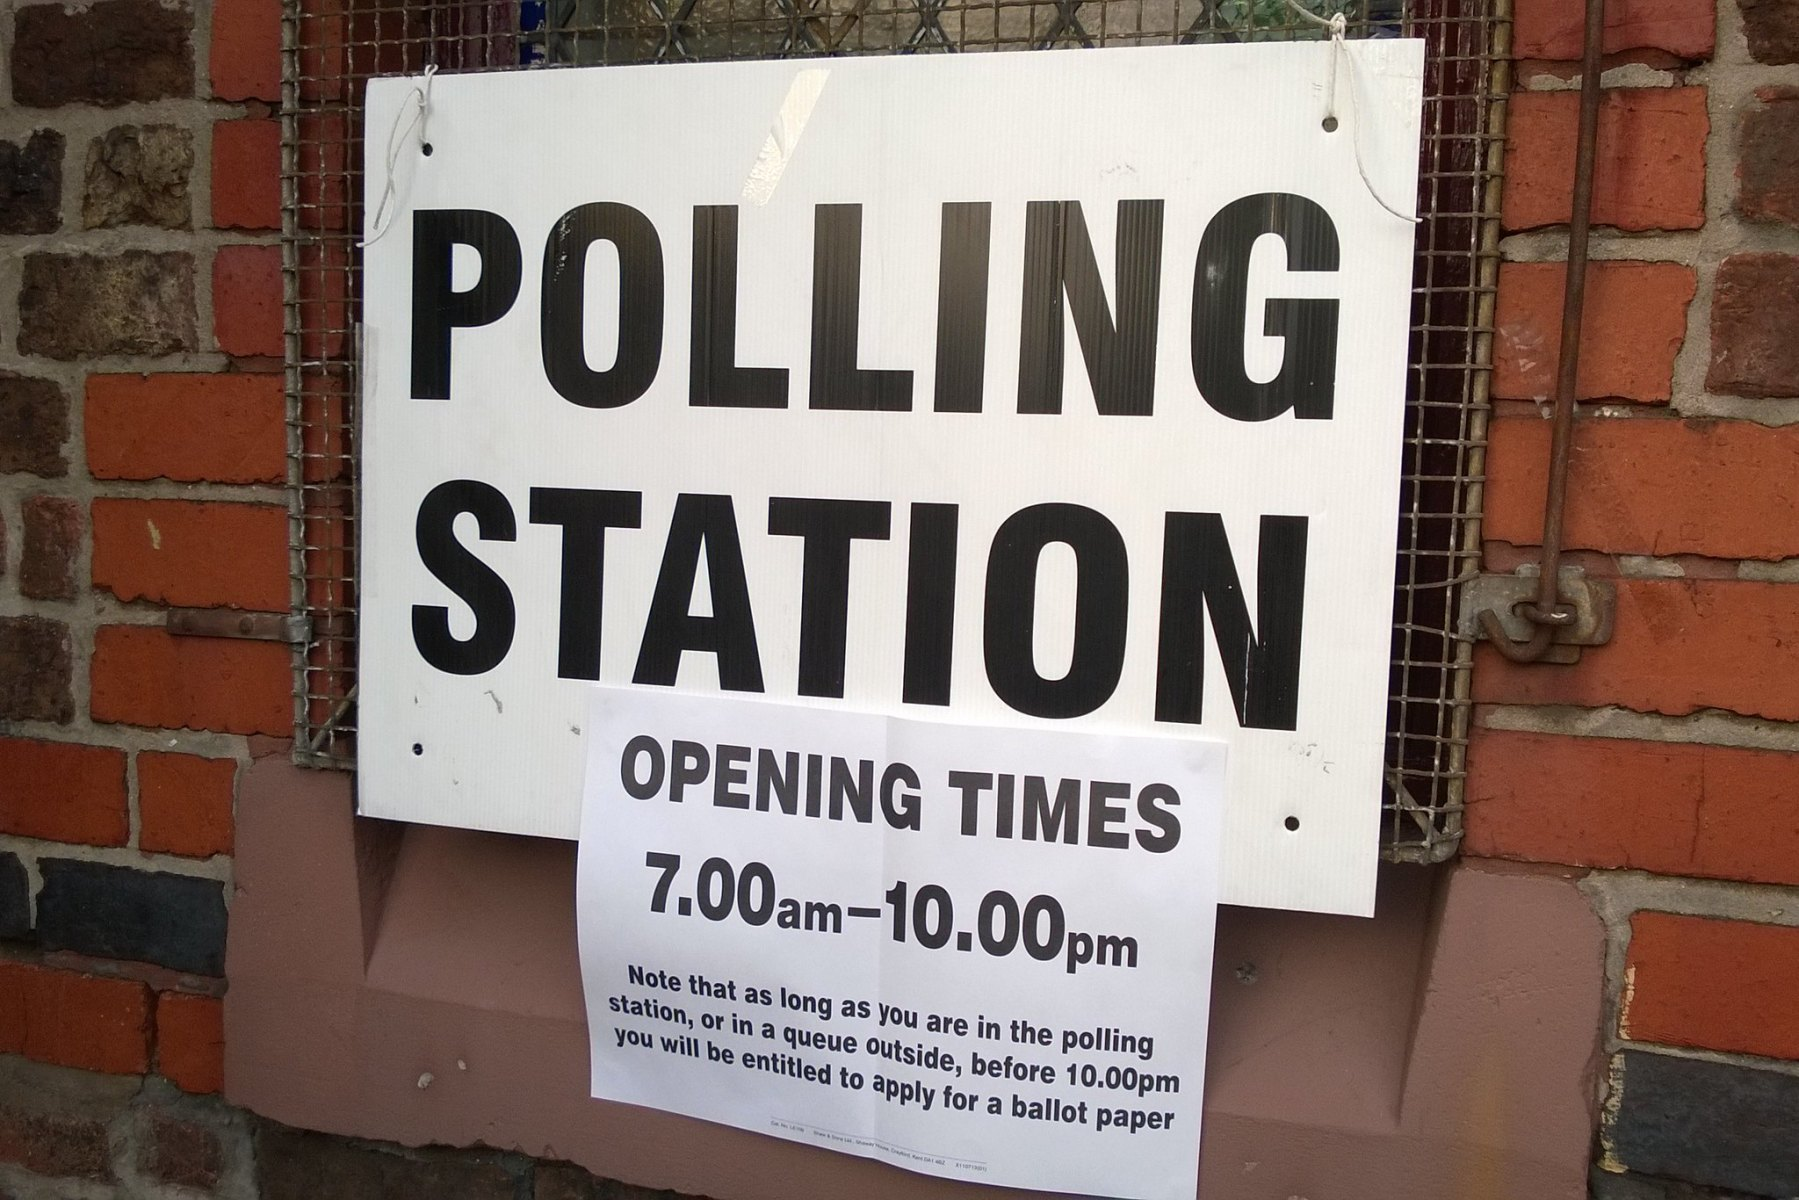 Image of polling place